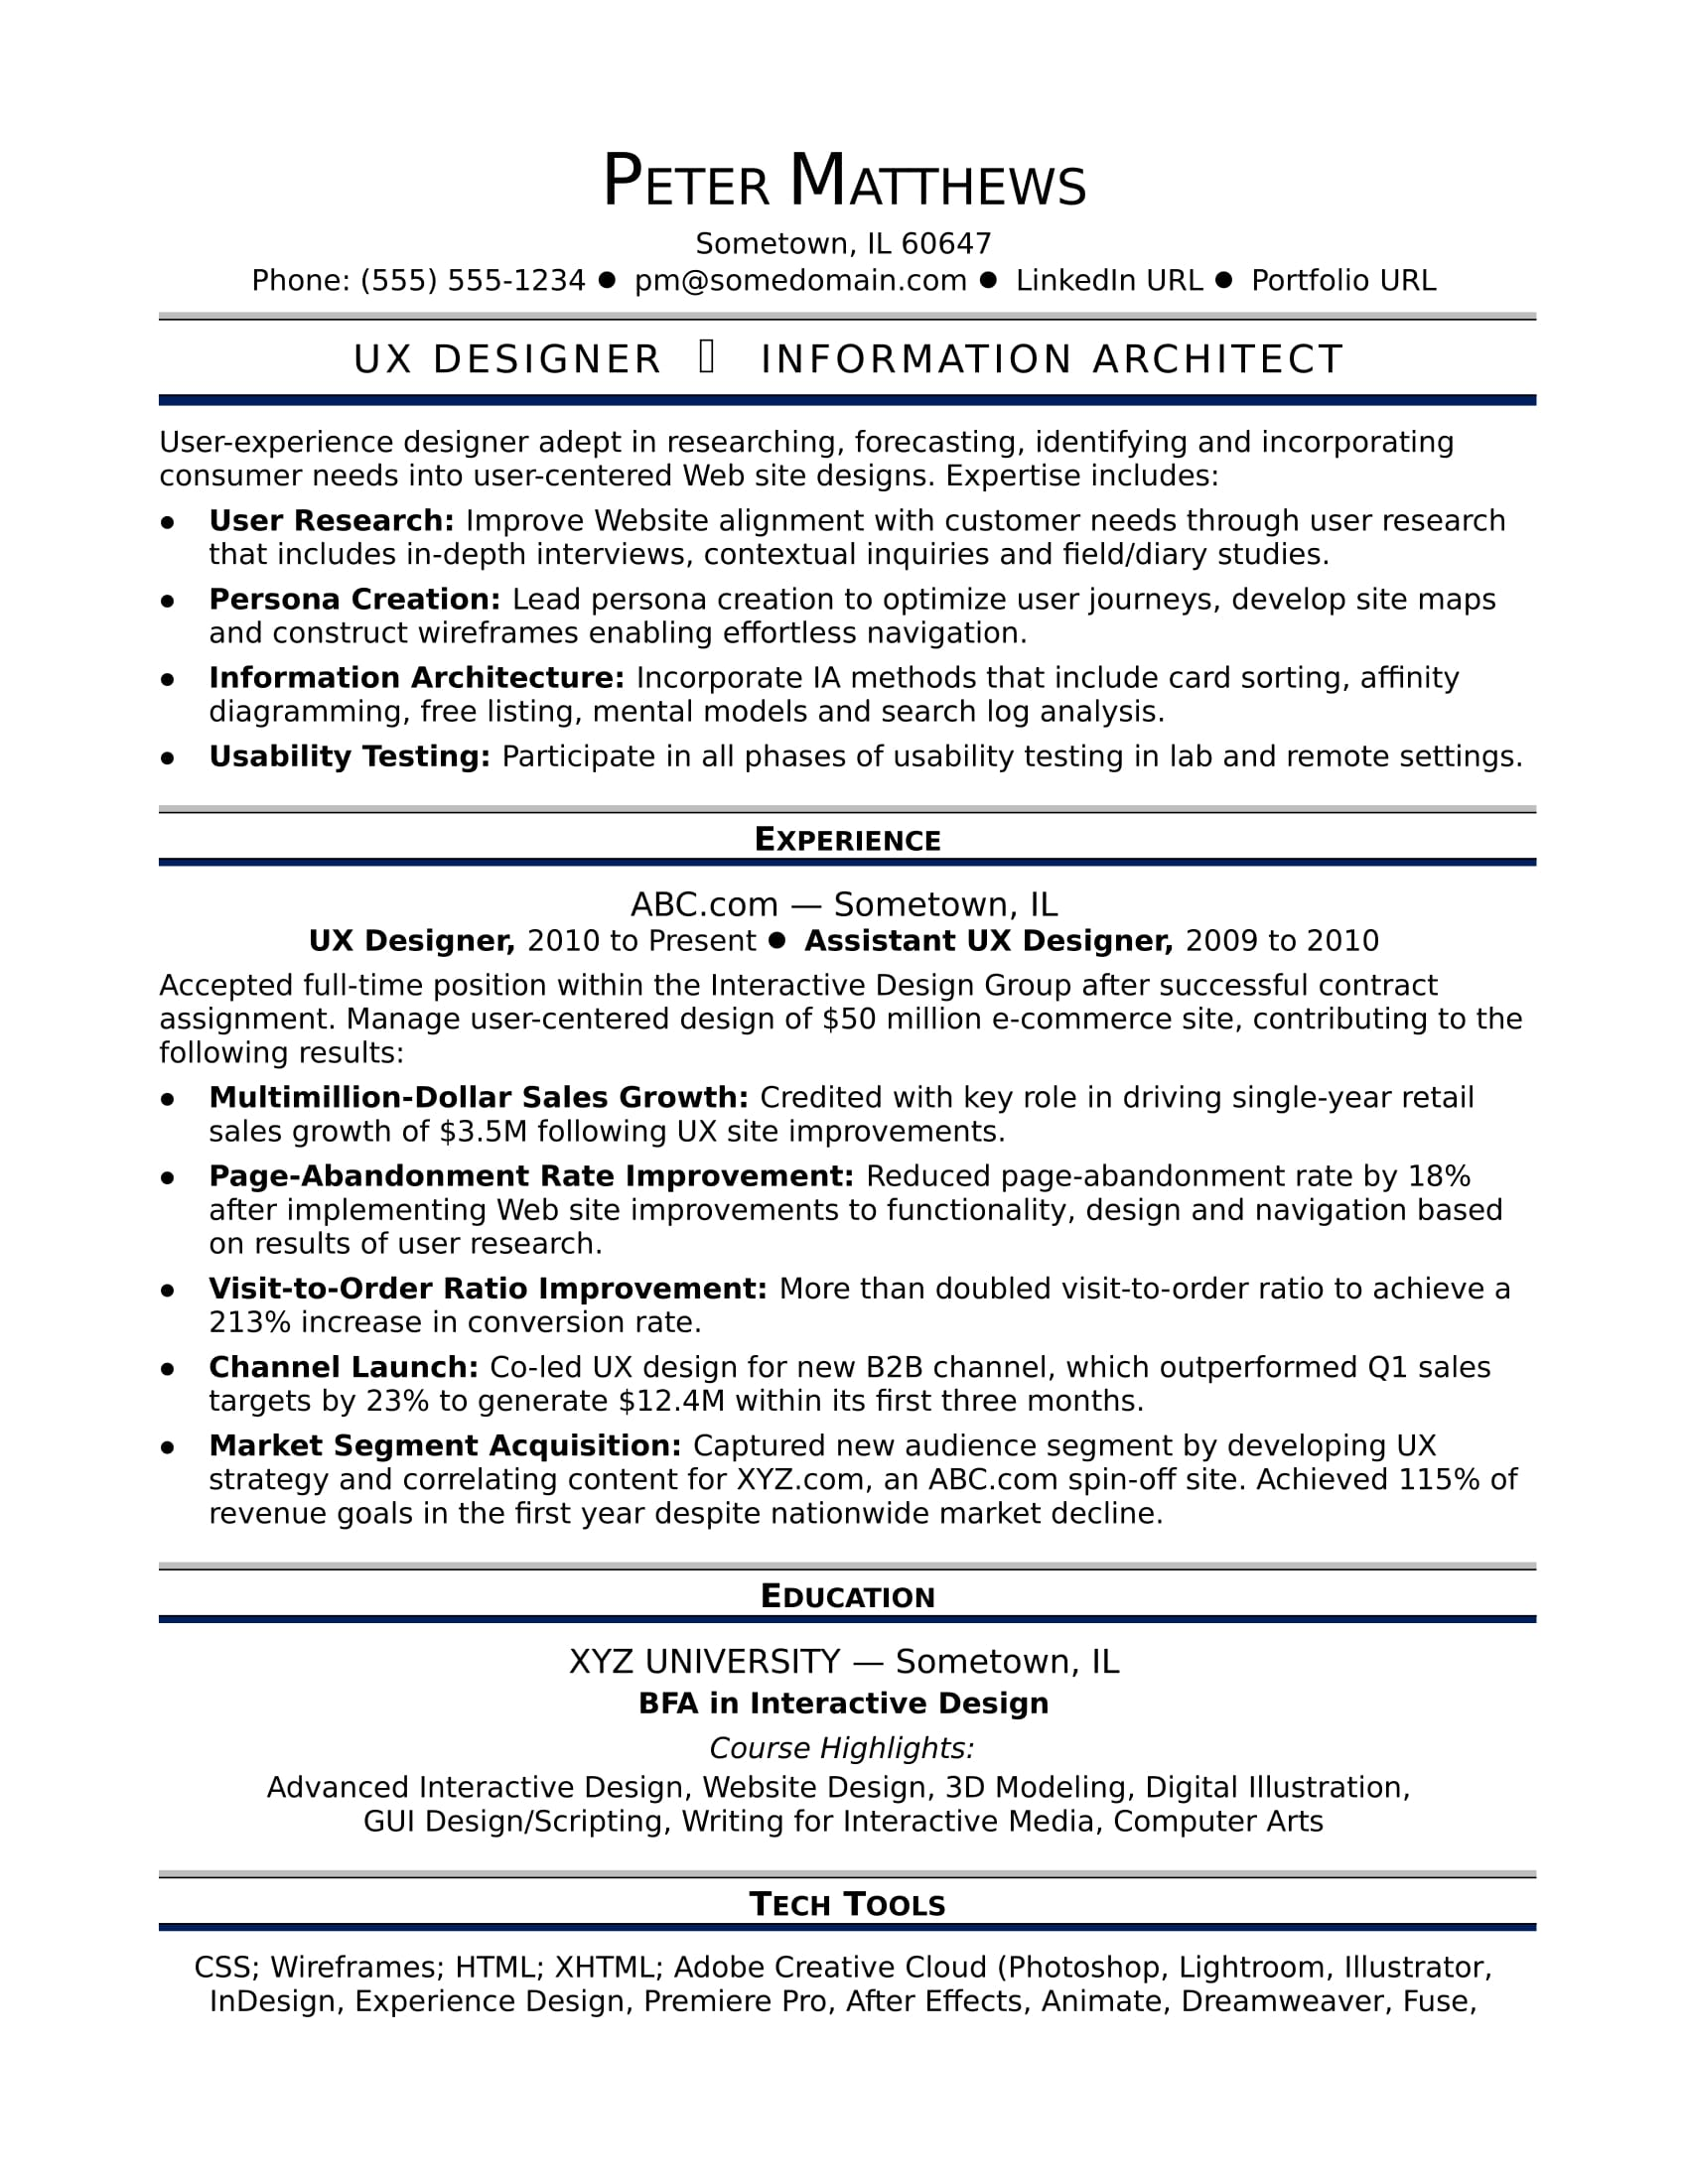 sample resume for a midlevel ux designer - Ux Designer Resume